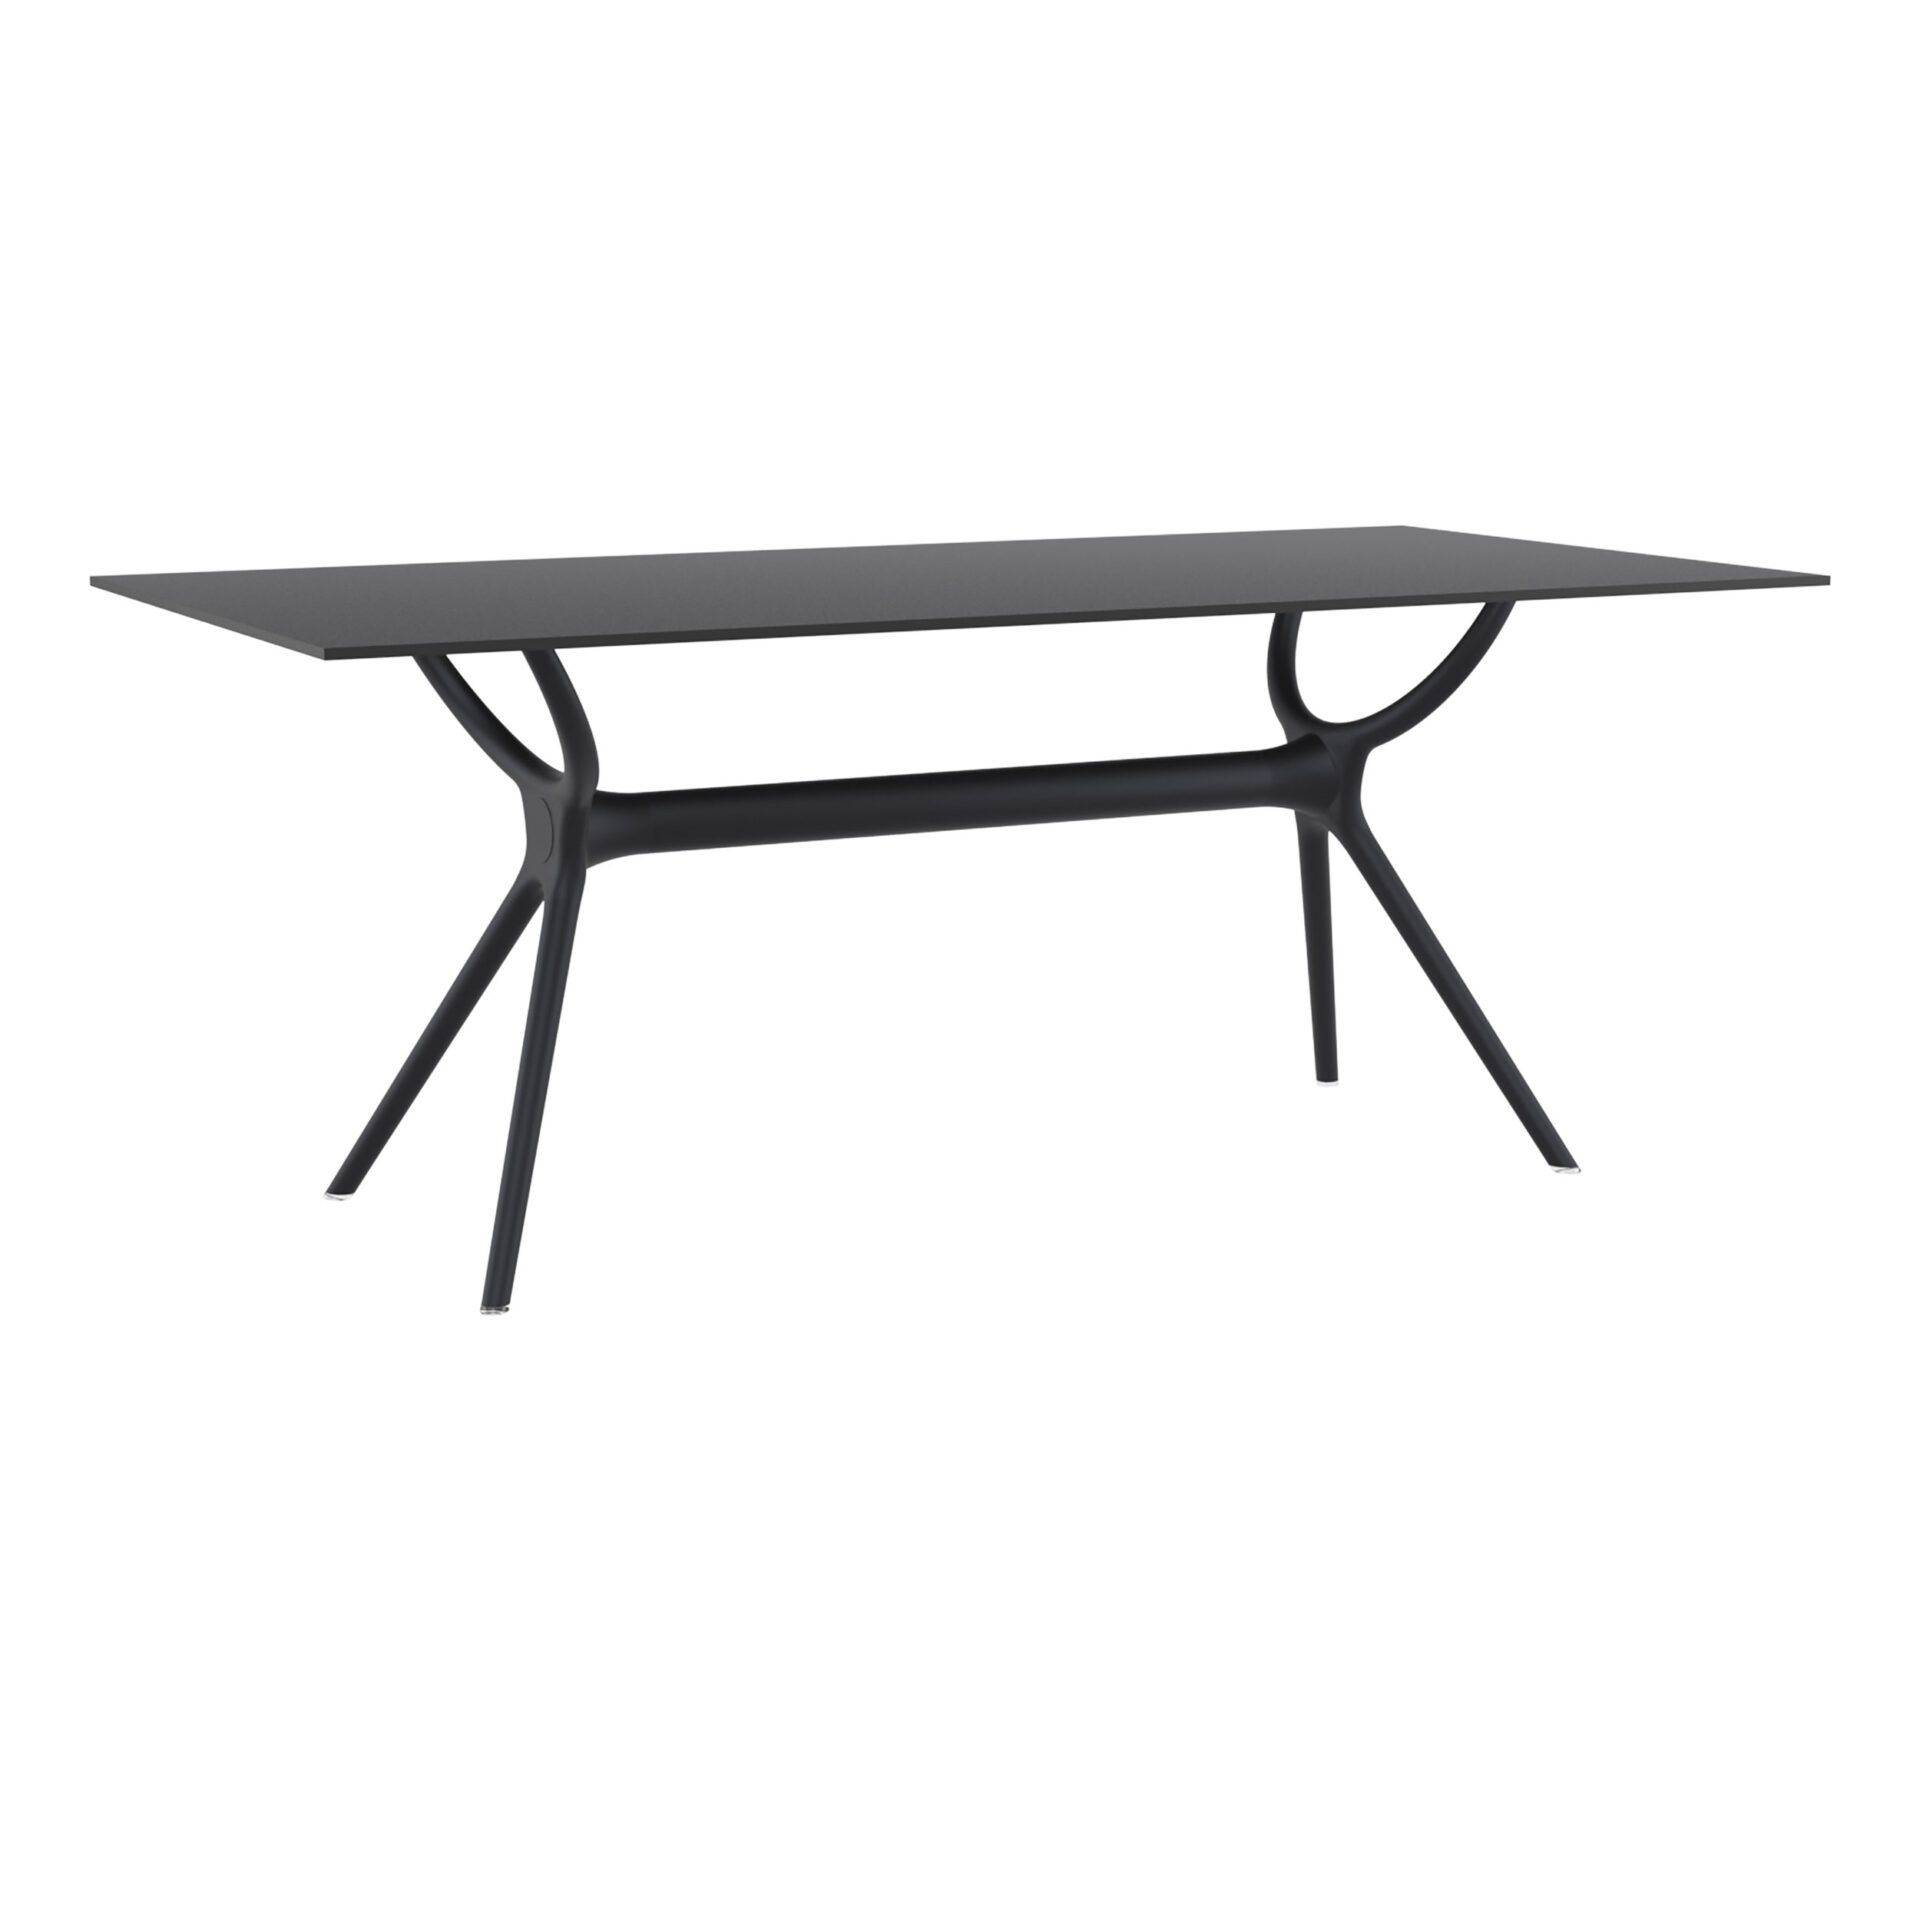 polypropylene dining air table 180 black front side